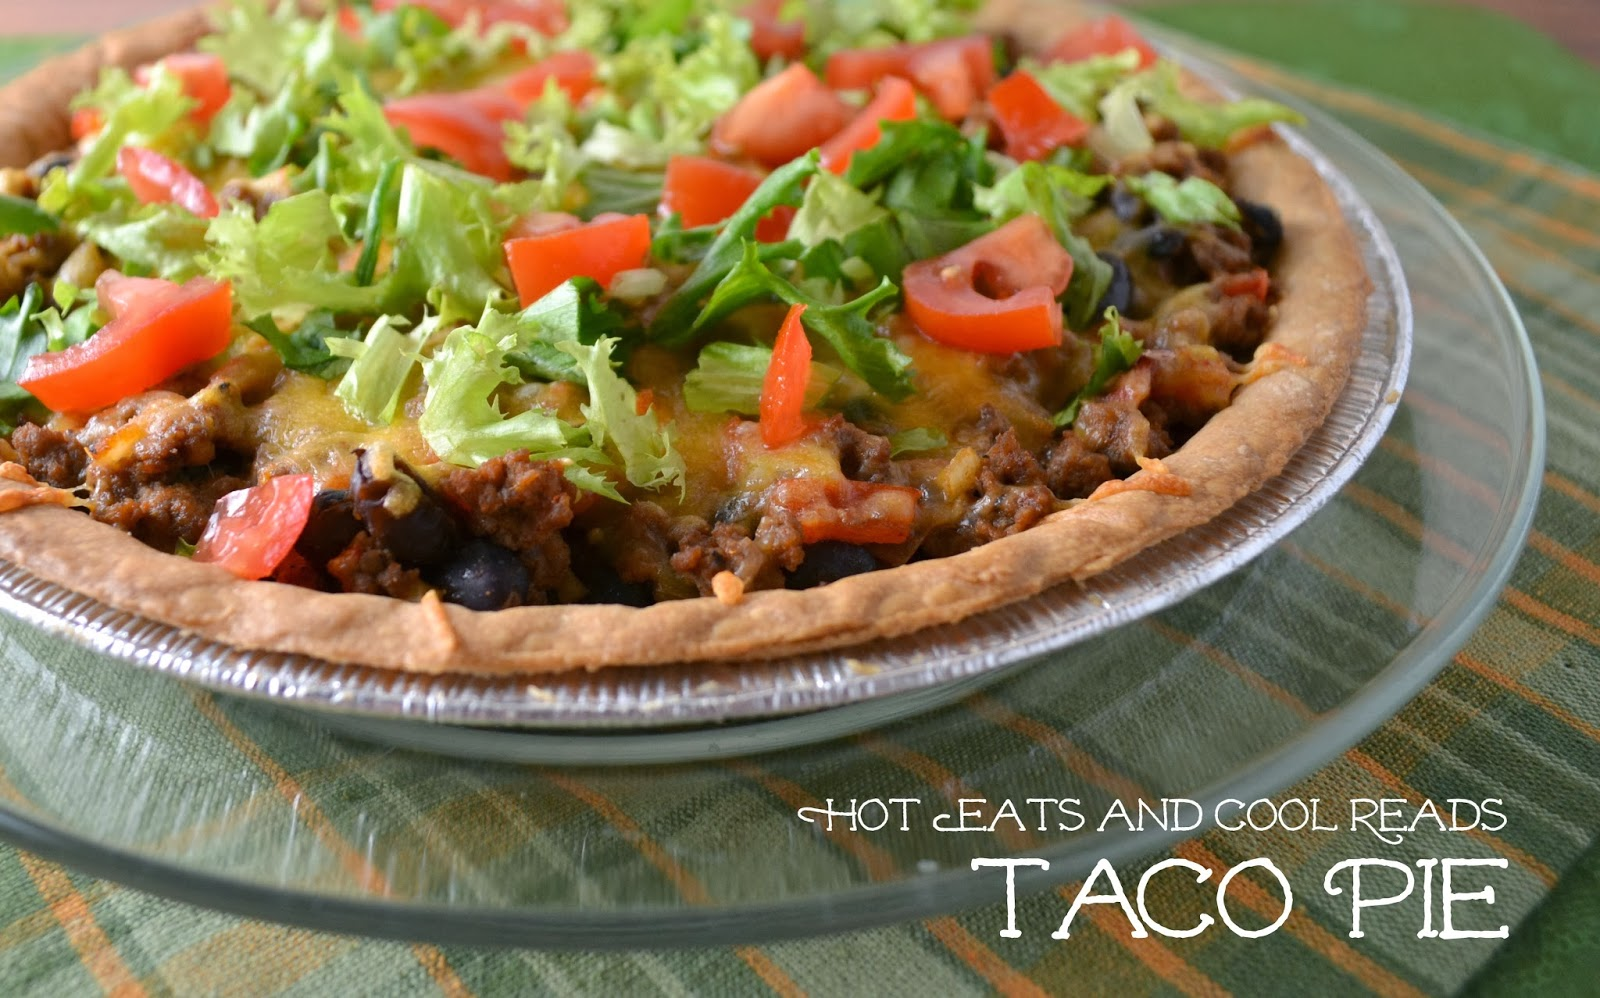 Hot Eats and Cool Reads: Ground Beef Taco Pie Recipe